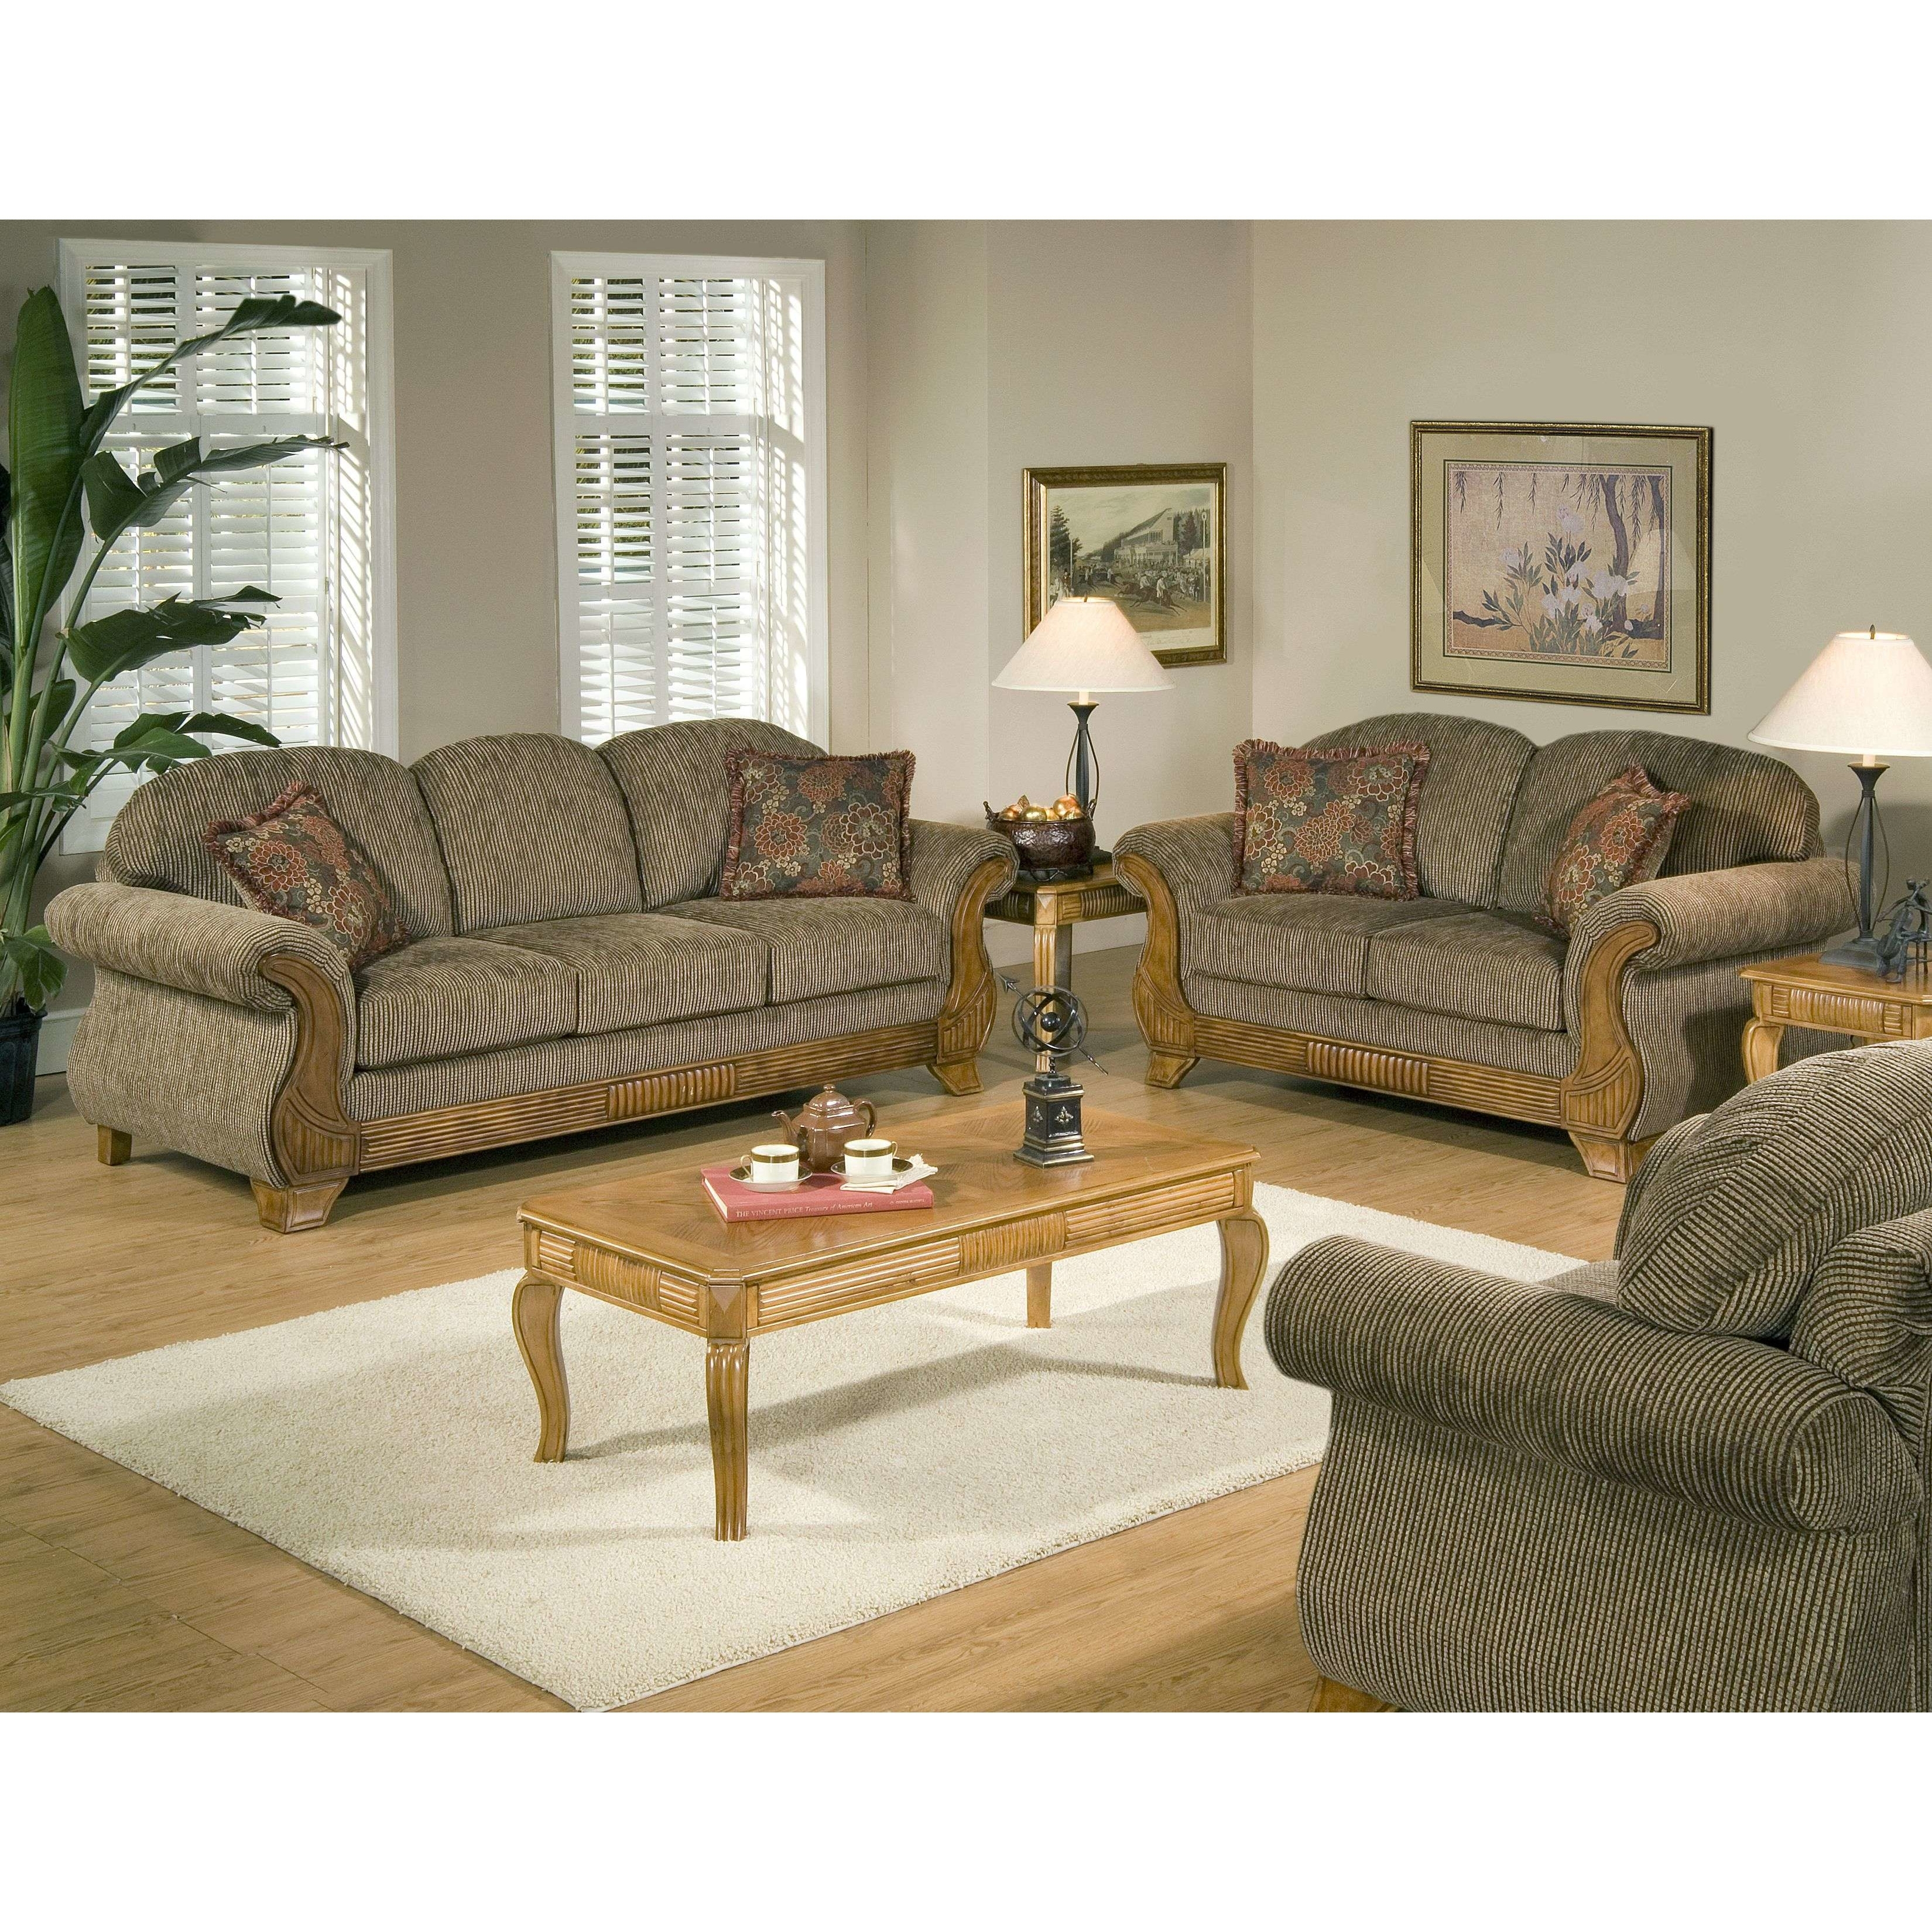 Sectional Couches Nashville Tn Kids Furniture Knoxville Tn Knoxville for Knoxville Tn Sectional Sofas (Image 6 of 10)